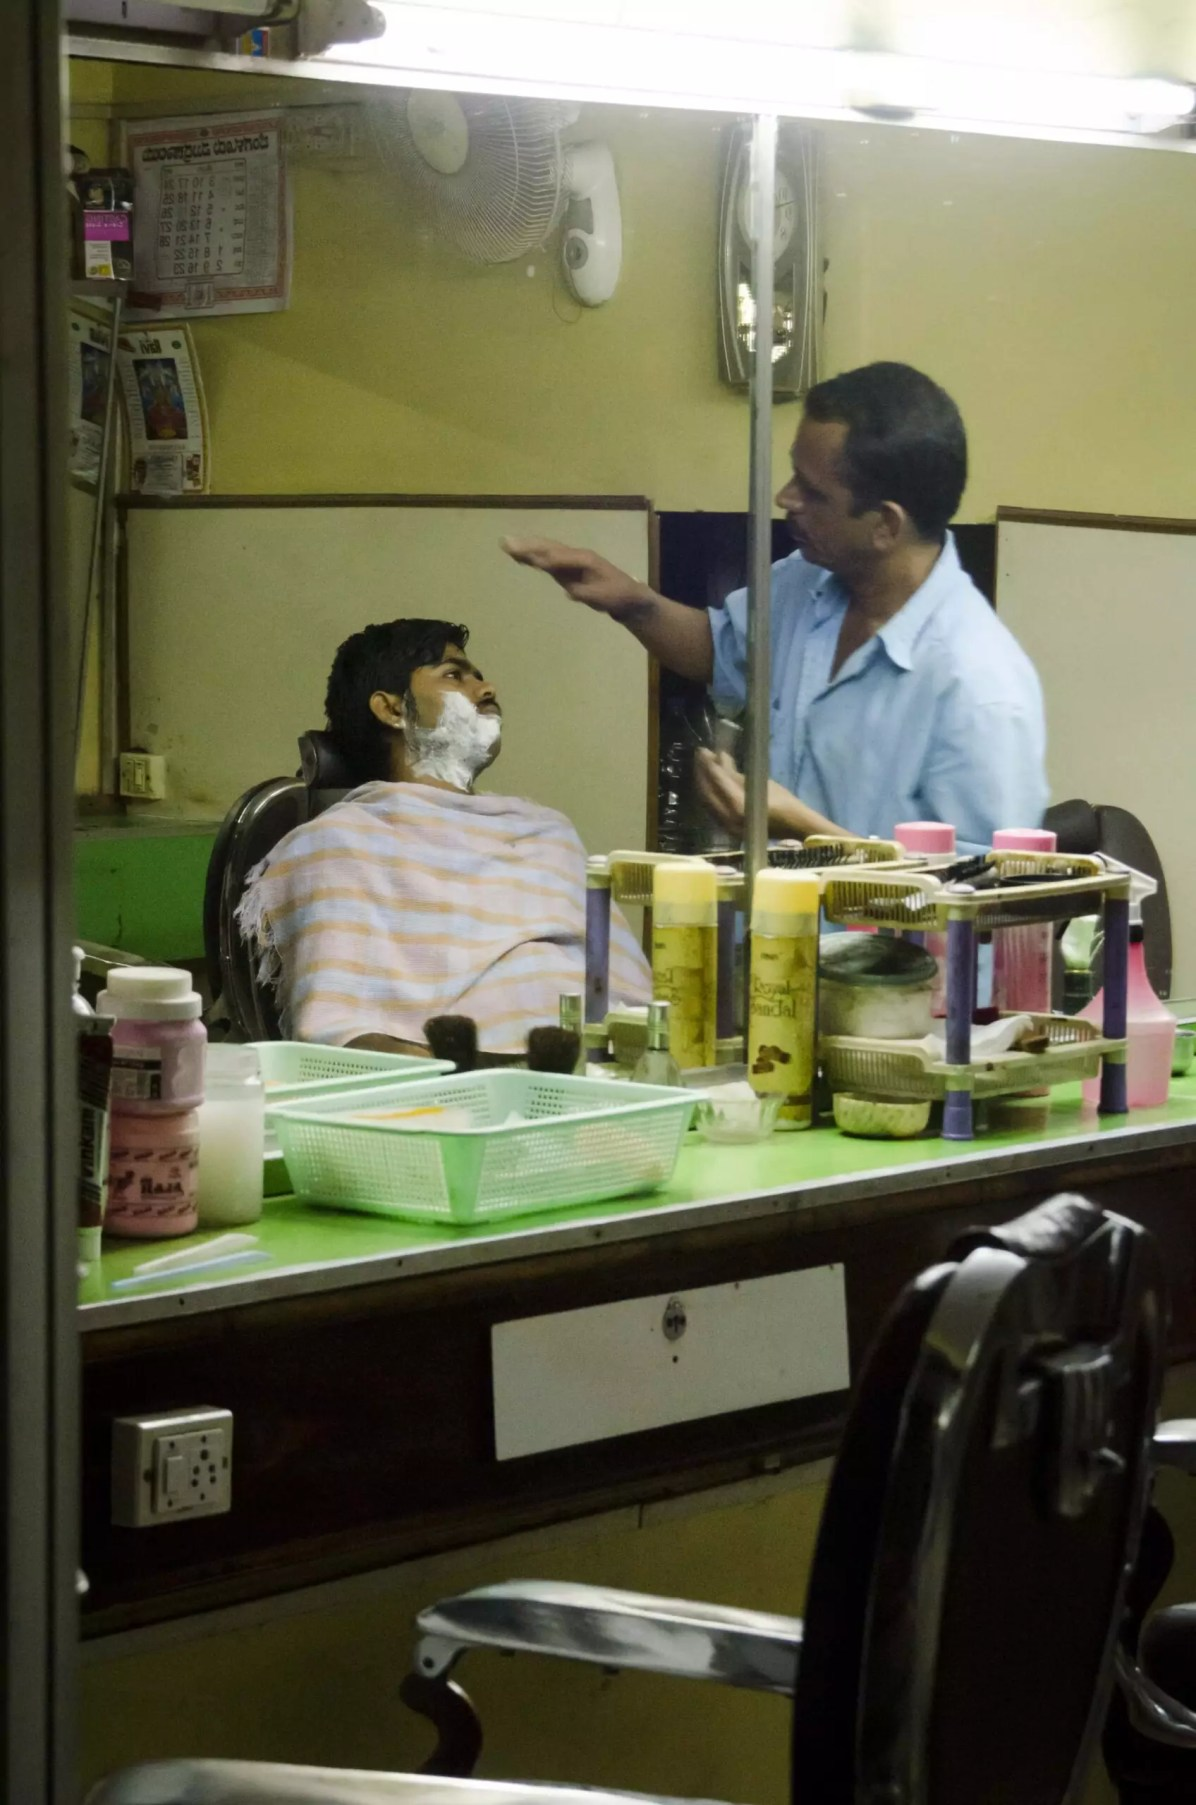 Places to visit in Bangalore: The Barber - Things to do in Bangalore Where to stay in Bangalore - Bangalore Travel Blog